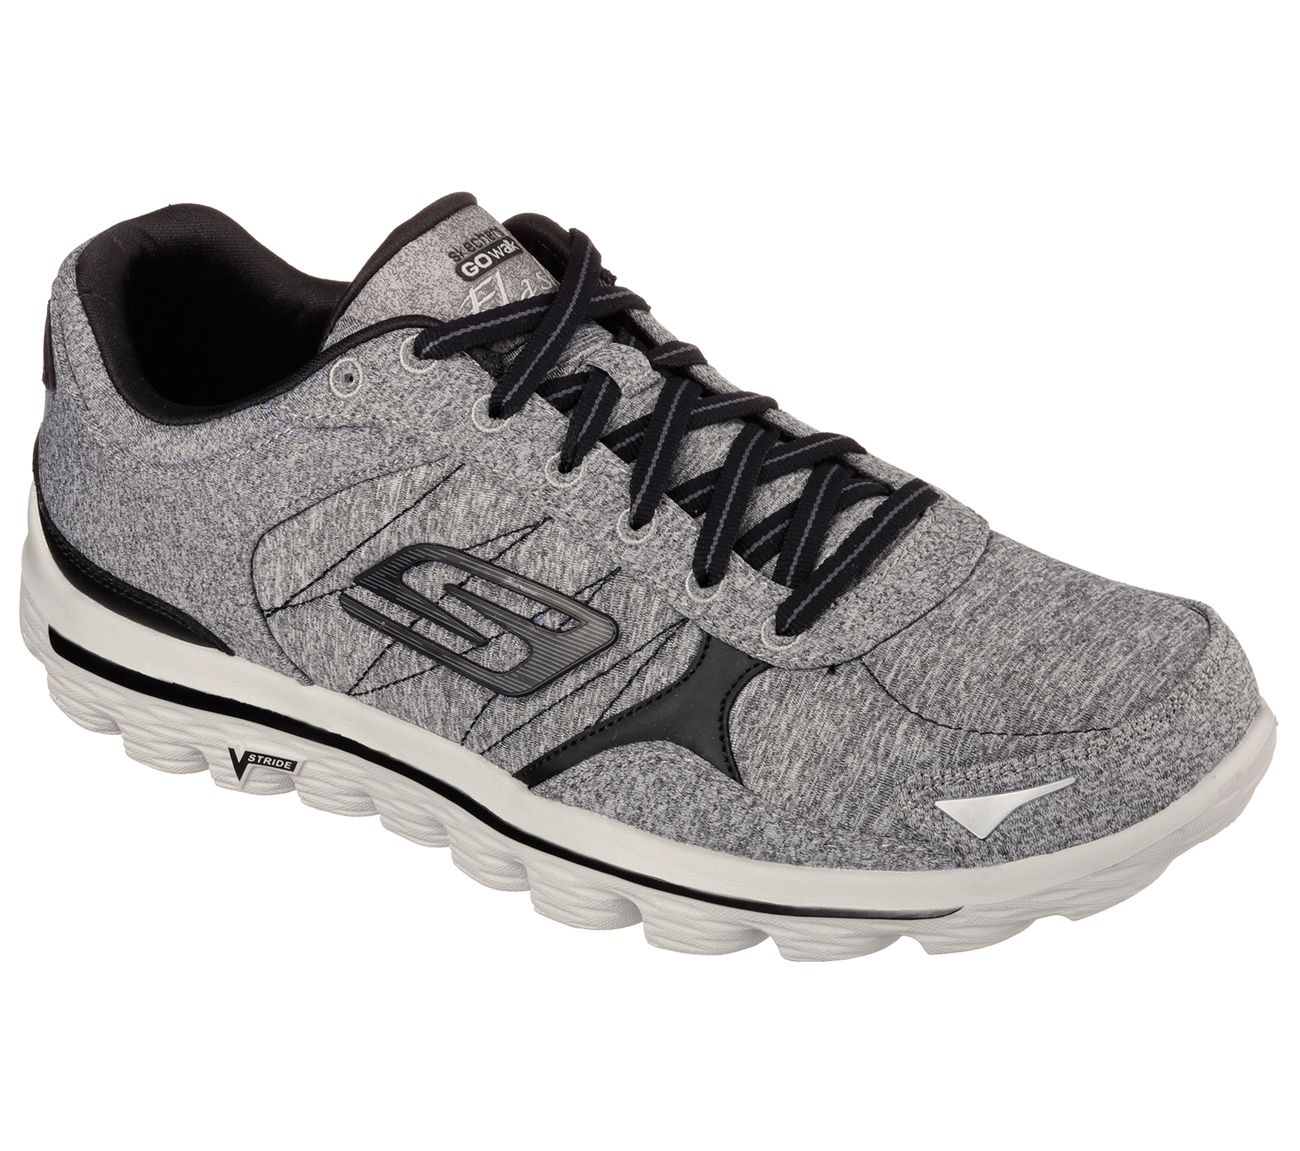 Energize Every Step In The Skechers Gowalk 2 Flash Gym Featuring